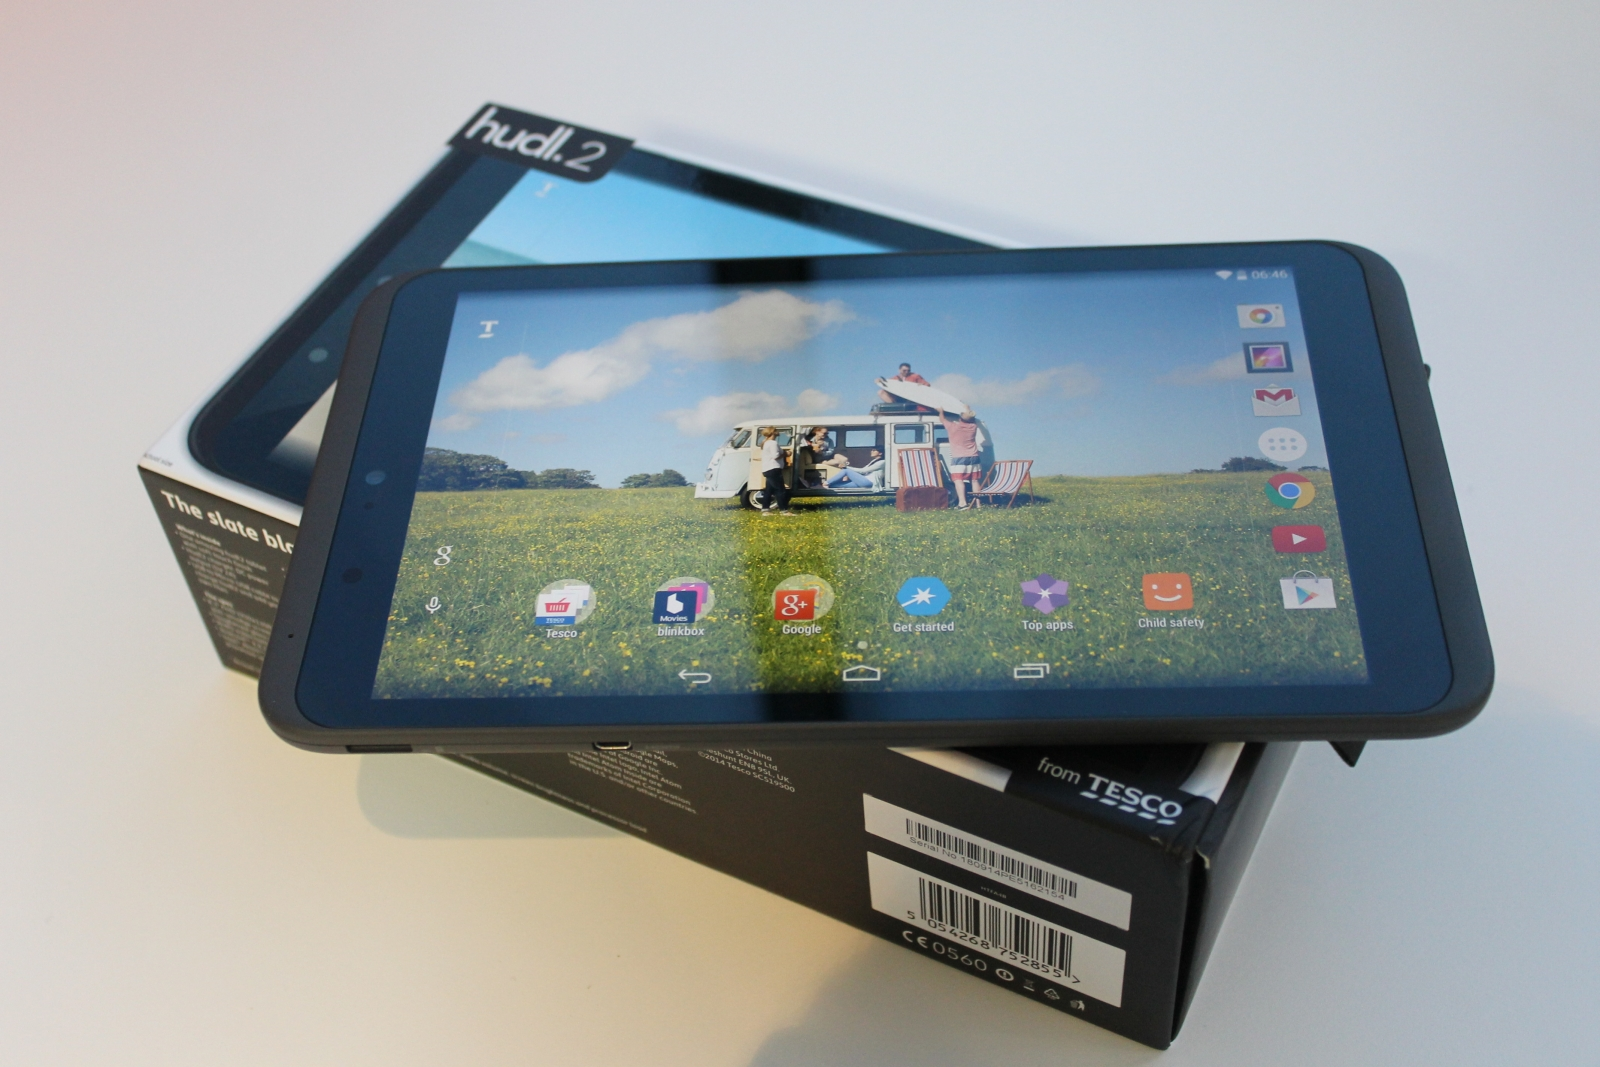 Tesco Tablet Hudl 2 Review